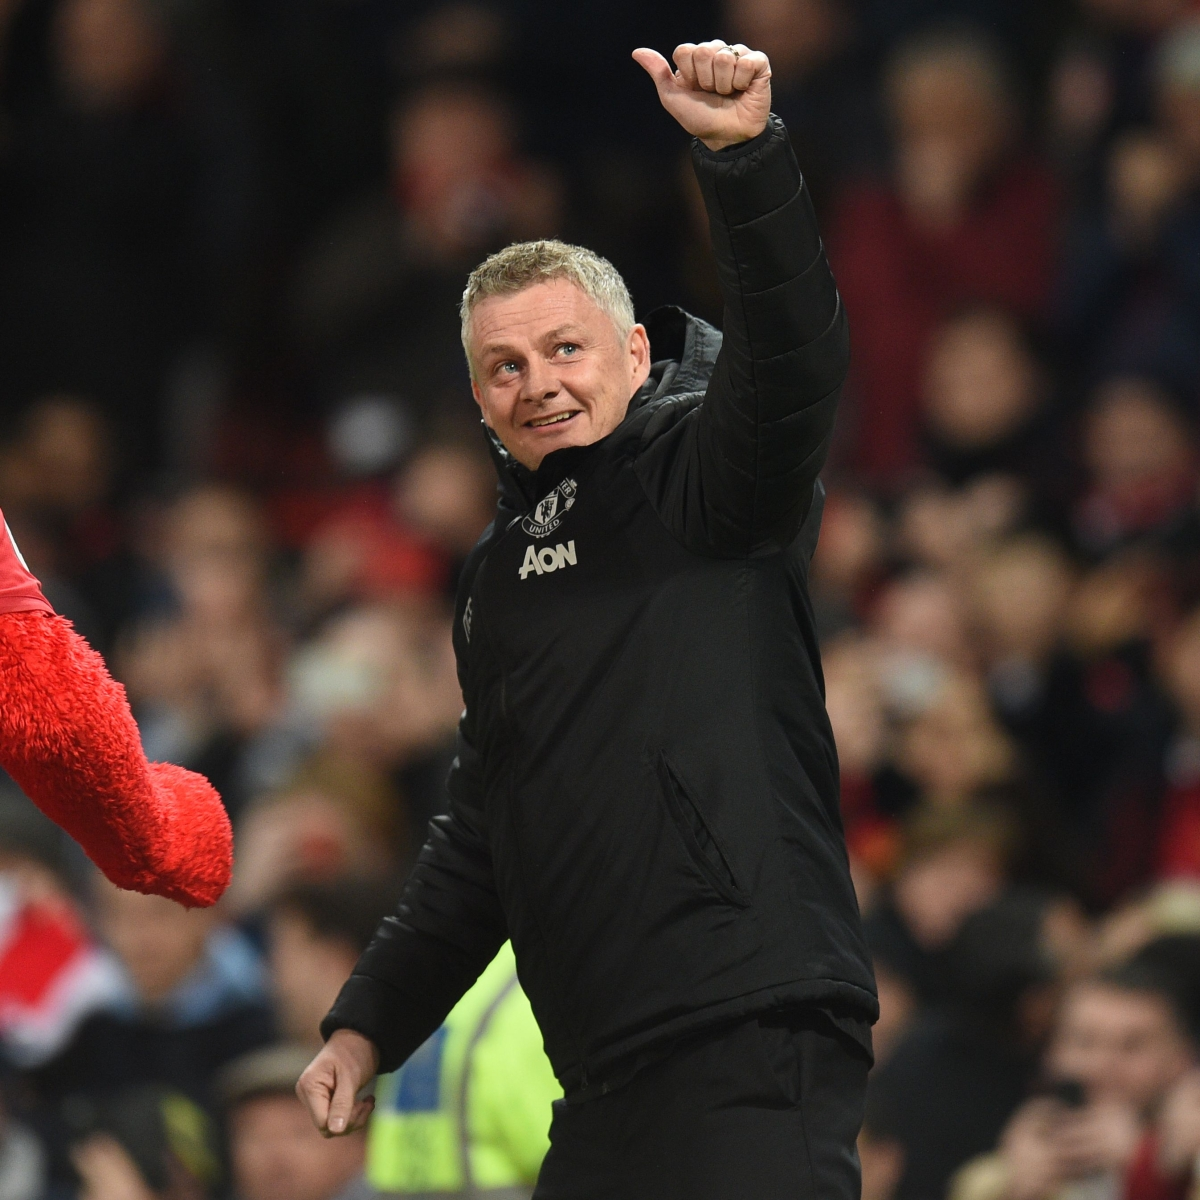 'Ole at the wheel': Manchester United manager Solskjaer aims to compete for title next season